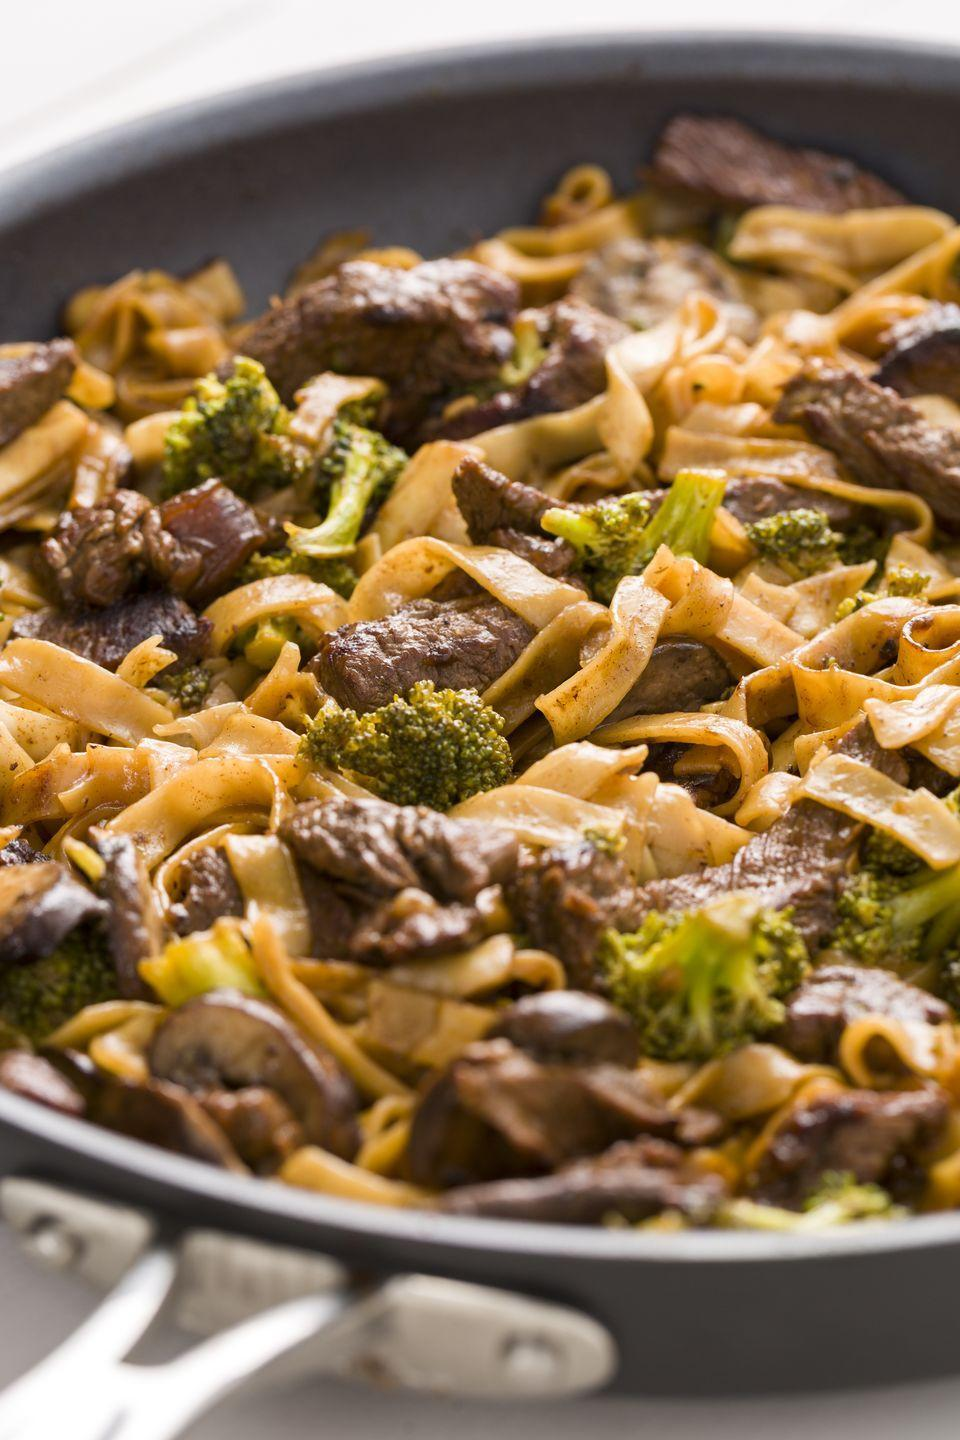 "<p>Leftover flank steak goes perfectly with this savory broccoli and noodles combo.</p><p>Get the recipe from <a href=""https://www.delish.com/cooking/recipe-ideas/recipes/a45477/beef-and-broccoli-noodles-recipe/"" rel=""nofollow noopener"" target=""_blank"" data-ylk=""slk:Delish"" class=""link rapid-noclick-resp"">Delish</a>. </p>"